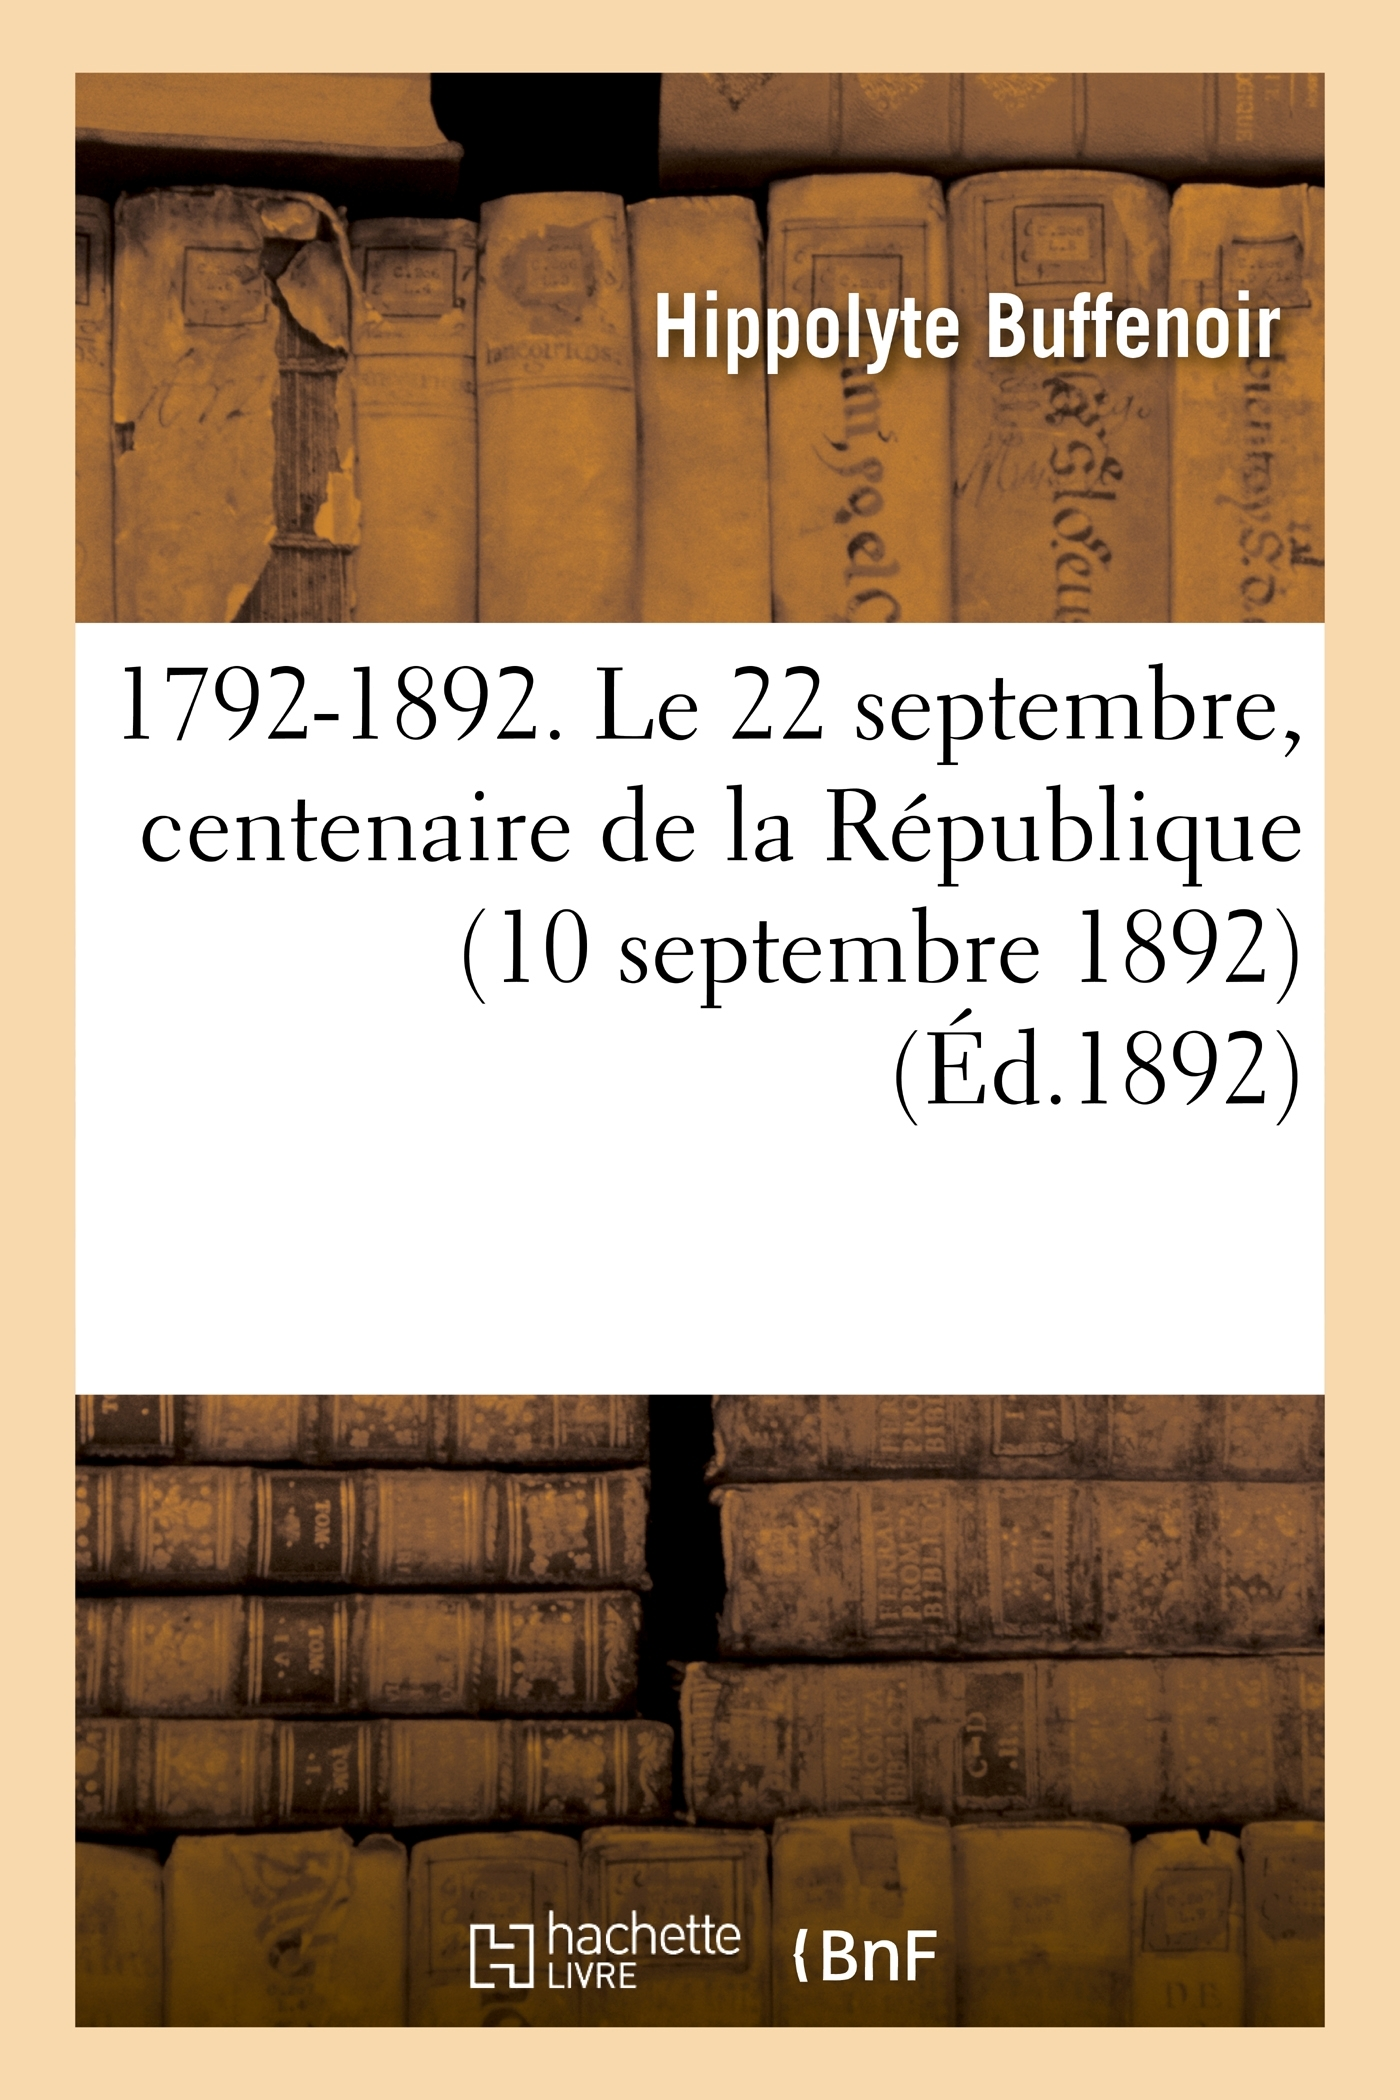 1792-1892. LE 22 SEPTEMBRE, CENTENAIRE DE LA REPUBLIQUE (10 SEPTEMBRE 1892)